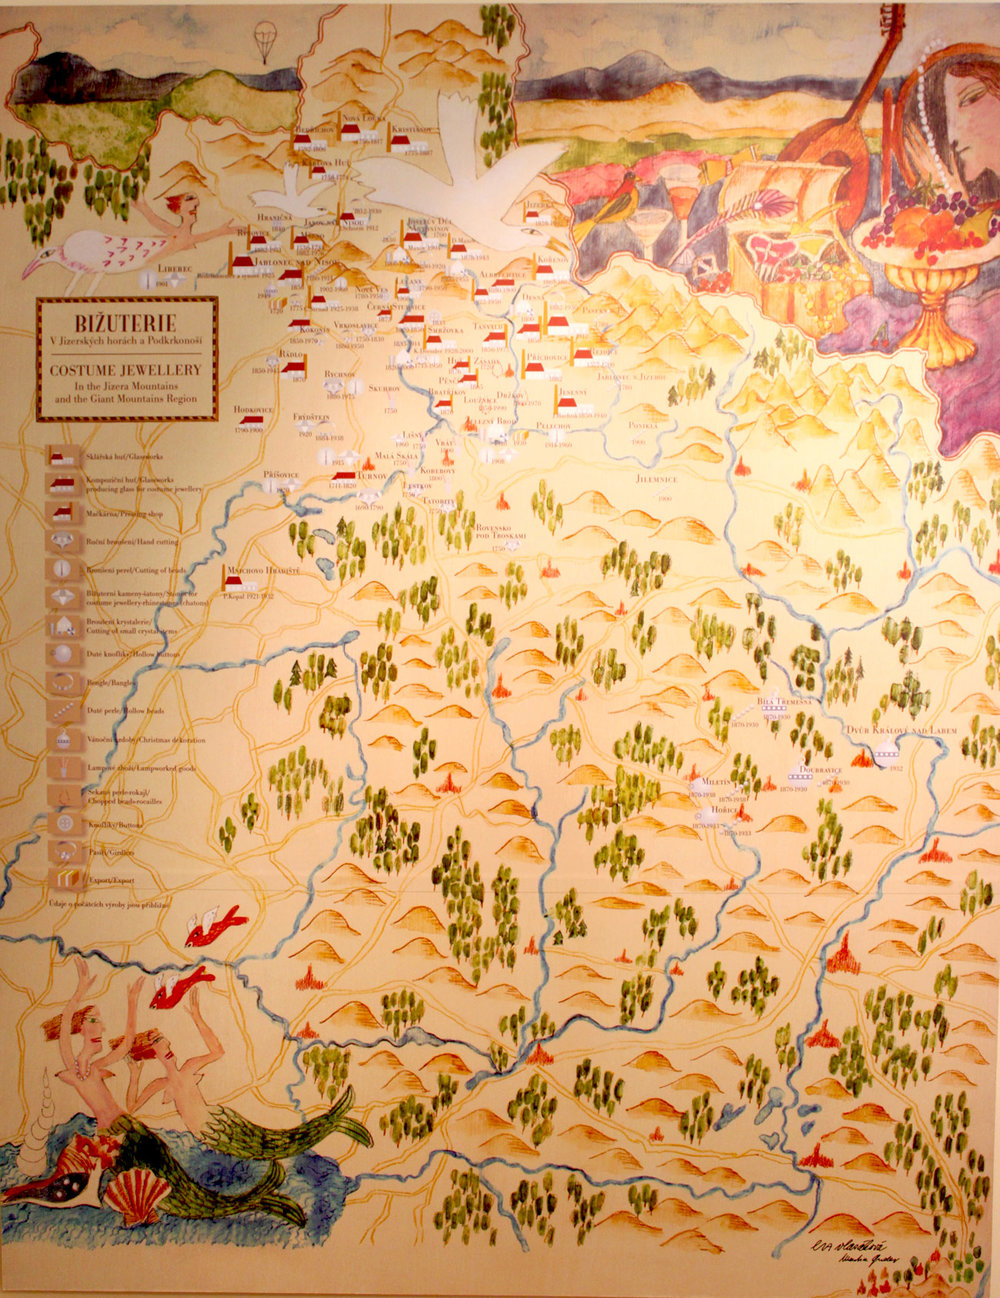 A village map from the  Jablonec Glass Museum  collection with icons representing the locations of glassworks, pressing shops, handcutting, buttons, lamp work, table cut beads, glass Christmas decorations and other specialities.